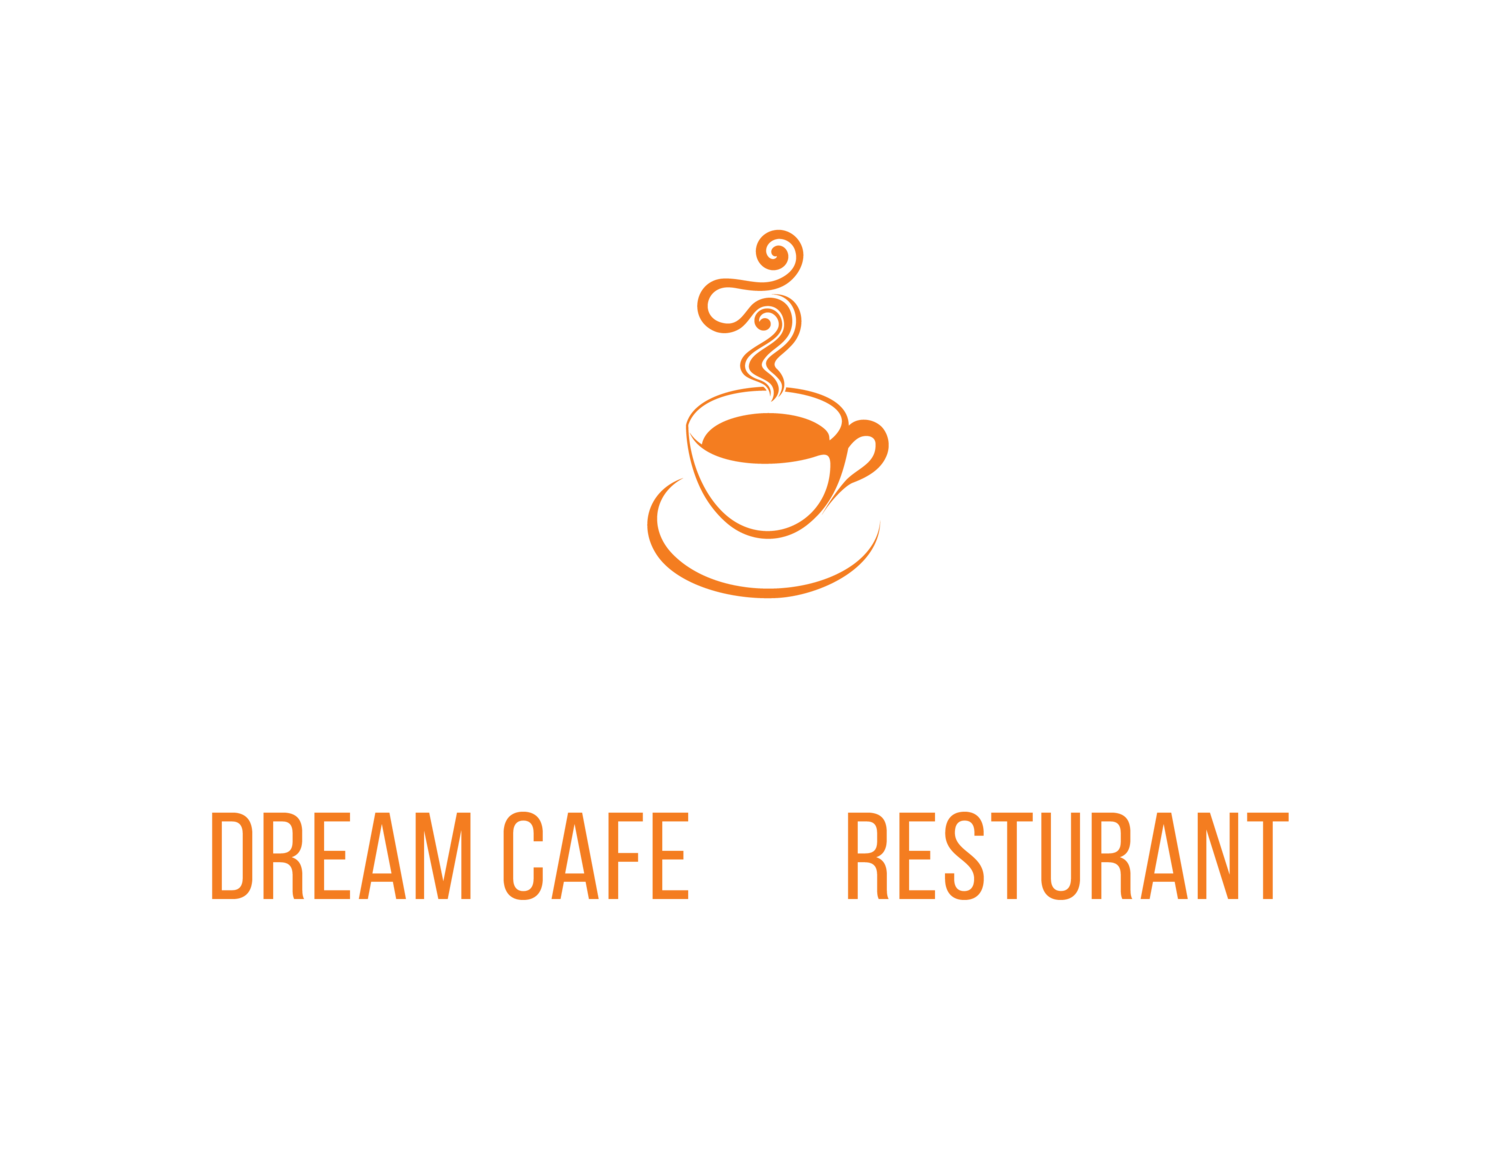 Georgian Dream Cafe | Georgian Dream Restaurant | Bay Ridge | Brooklyn, NY | Authentic Georgian Food